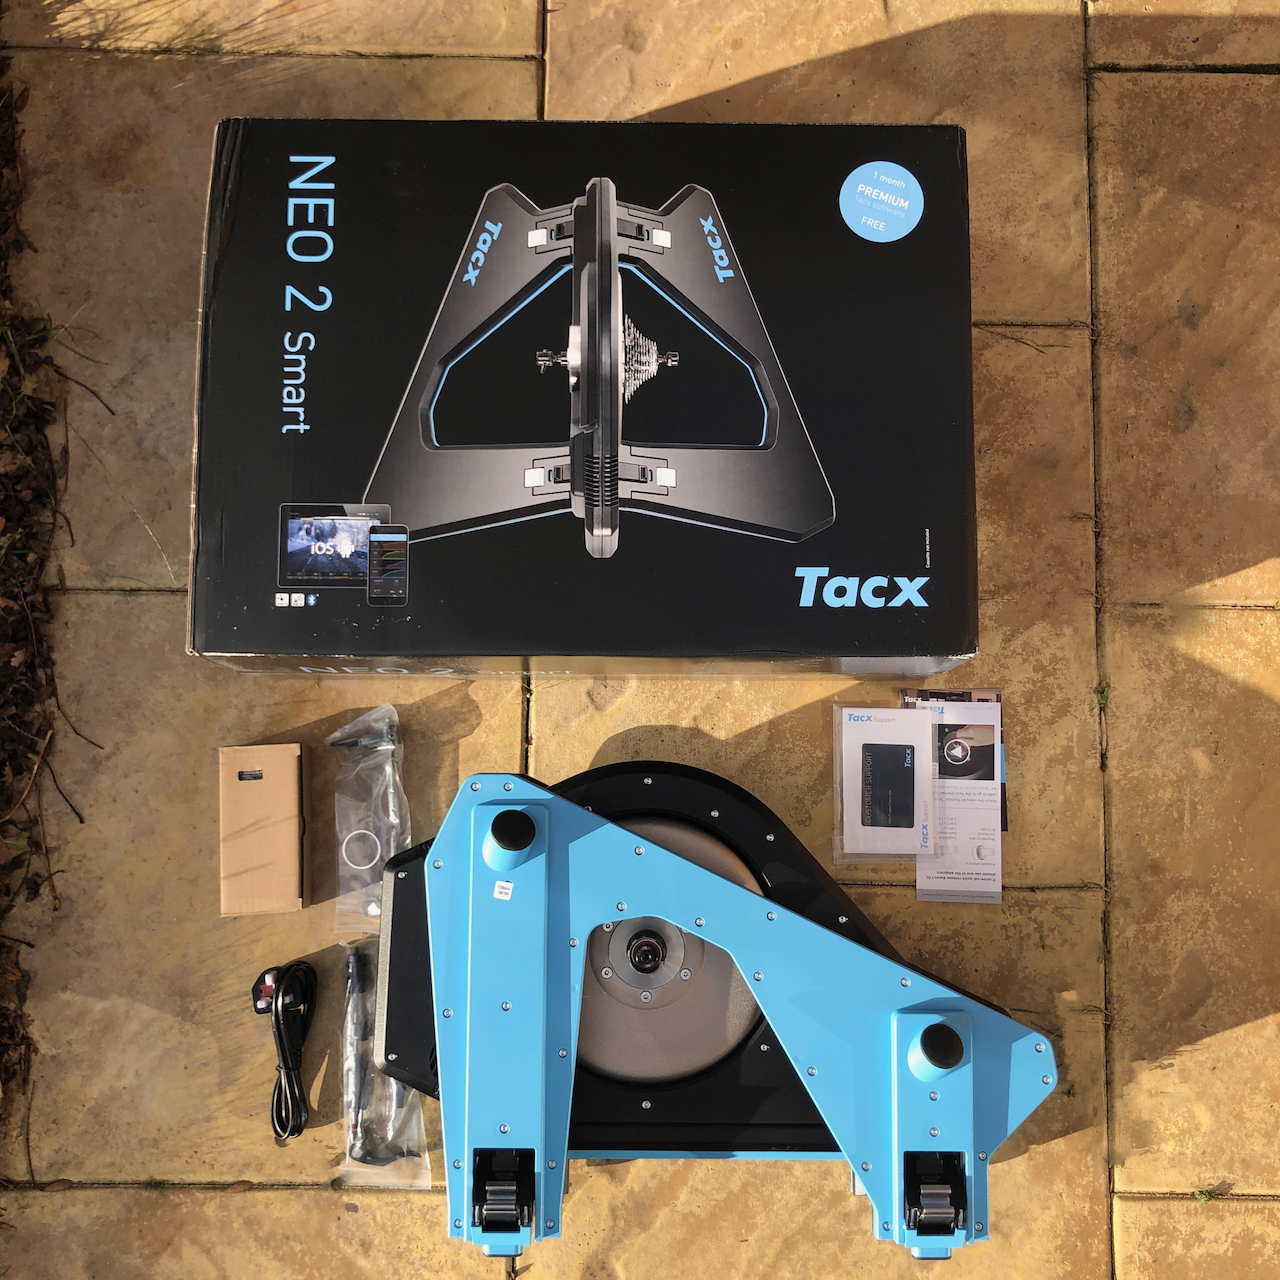 TitaniumGeek Screenshot 2018 12 20 at 17.01.20 Tacx NEO 2 Review | ZWIFT GEAR TEST Cycling Gear Reviews Smart Trainers Zwift  Zwift tacx neo 2 cycling   Image of Screenshot 2018 12 20 at 17.01.20